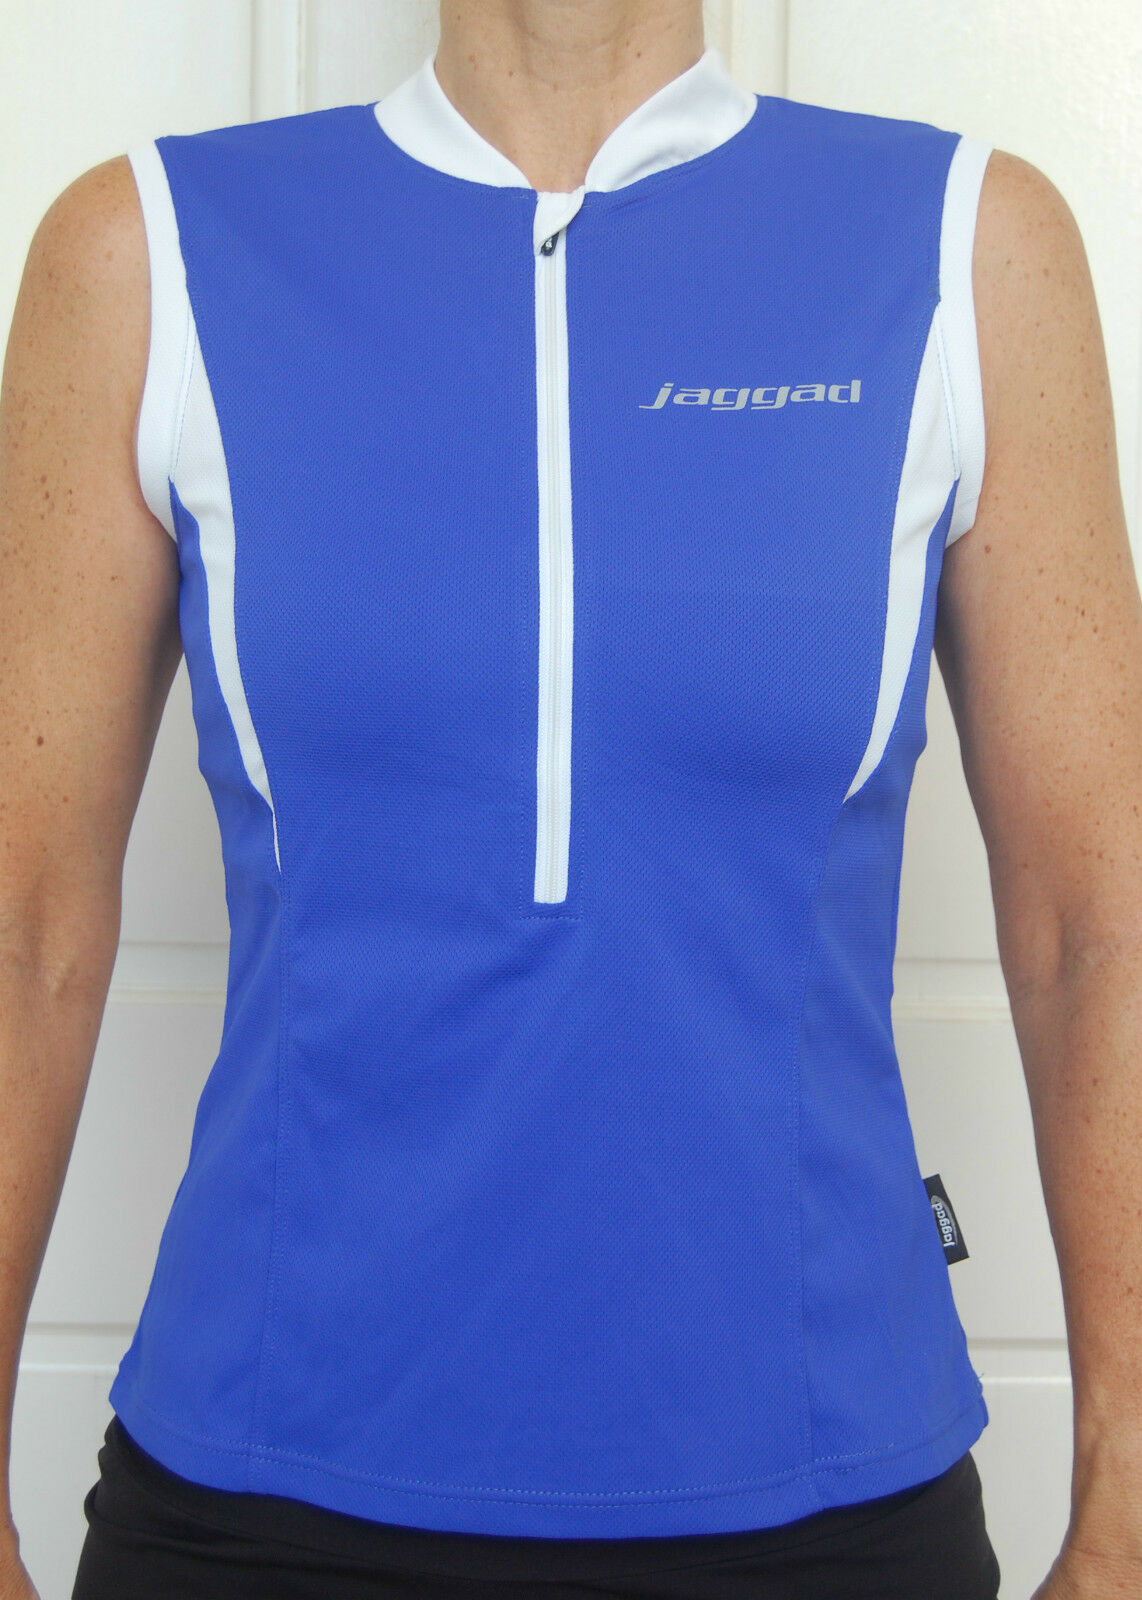 Cycling Bike Jersey Top sleeveless Womens Ladies Blue Jaggad S M L